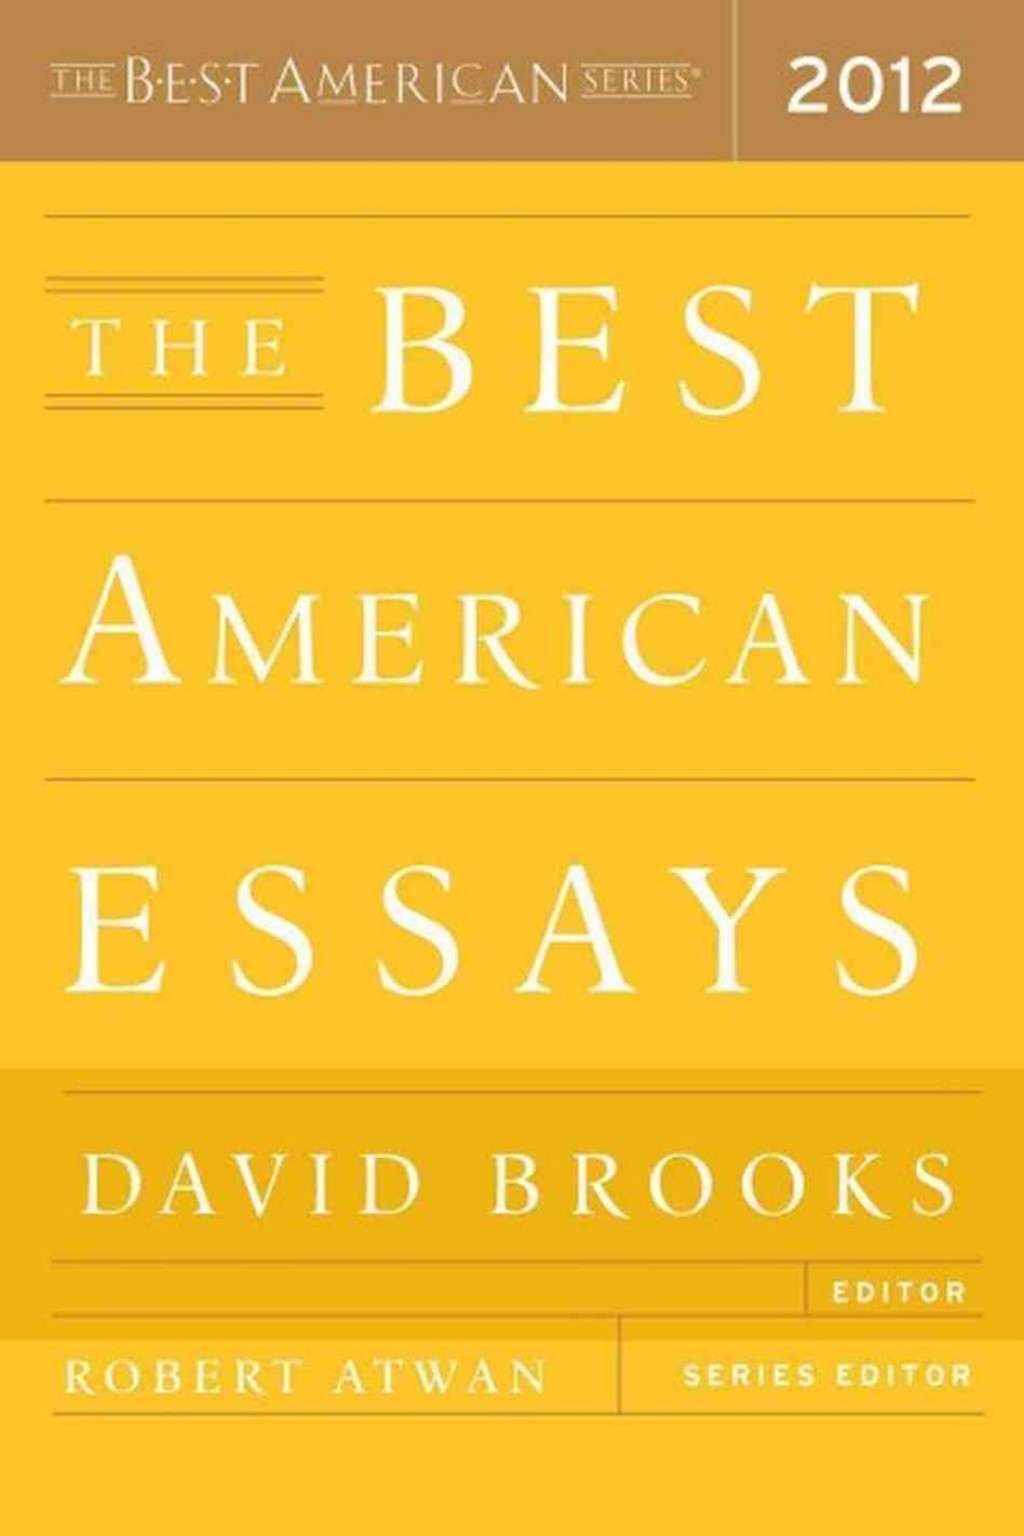 007 Best American Essays 2012 Essay Astounding 2017 Submissions Pdf Free Download Large